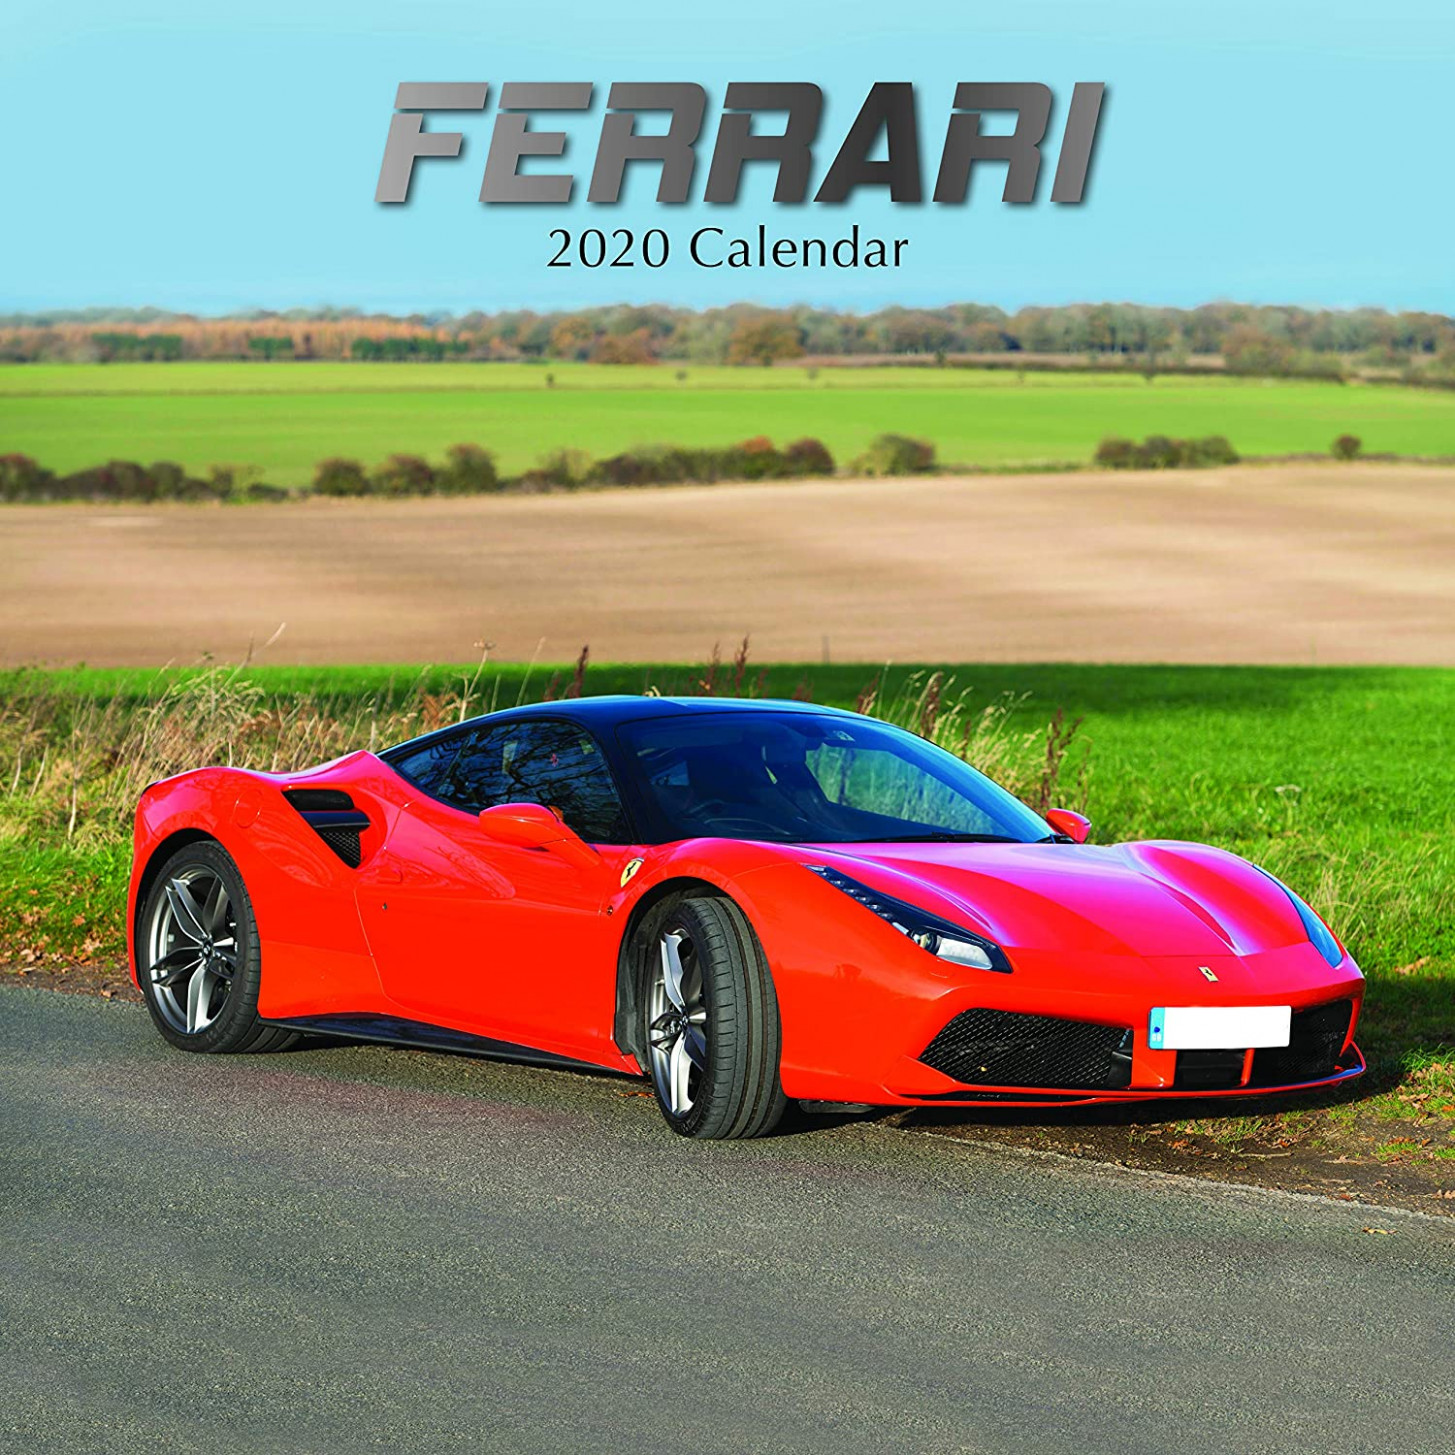 9 Wall Calendar - Ferrari Calendar, 9 x 9 Inch Monthly View, 9-Month,  Automobile Theme with Luxury Race Cars, Includes 9 Reminder Stickers